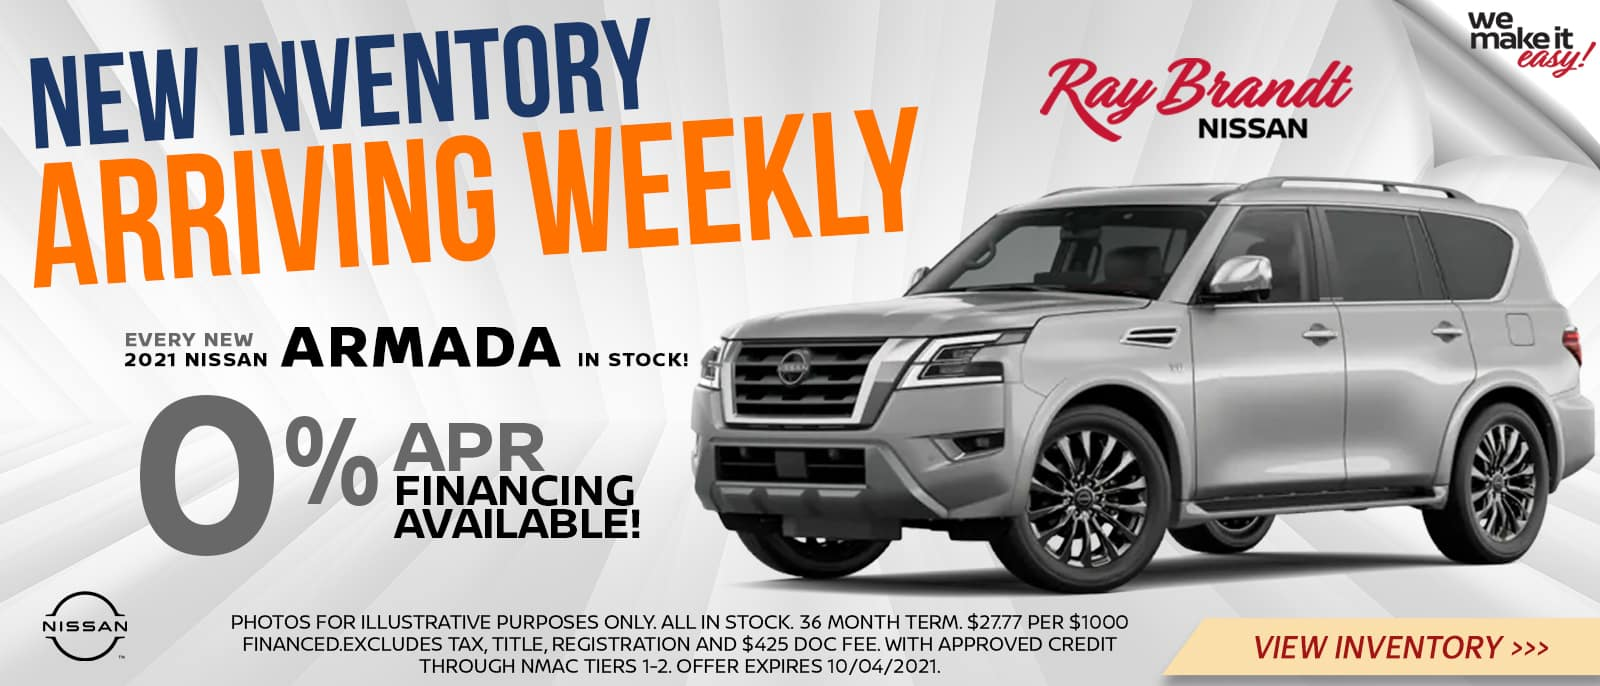 New Inventory Arriving Weekly 0% APR Financing on Nissan Armada